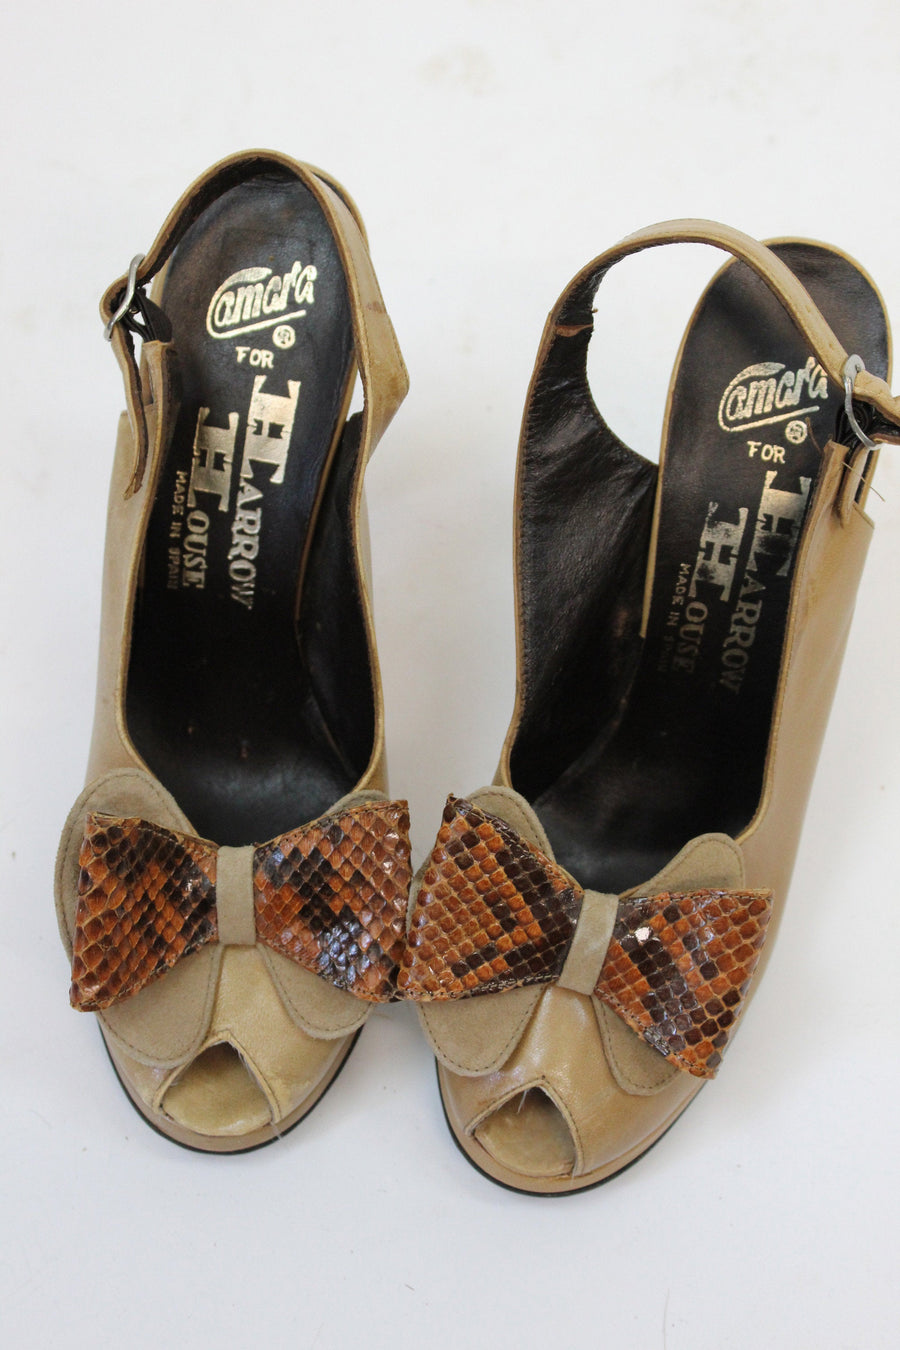 1970s slingback shoes size 7 us | vintage snake bow peep toe sandals | new in